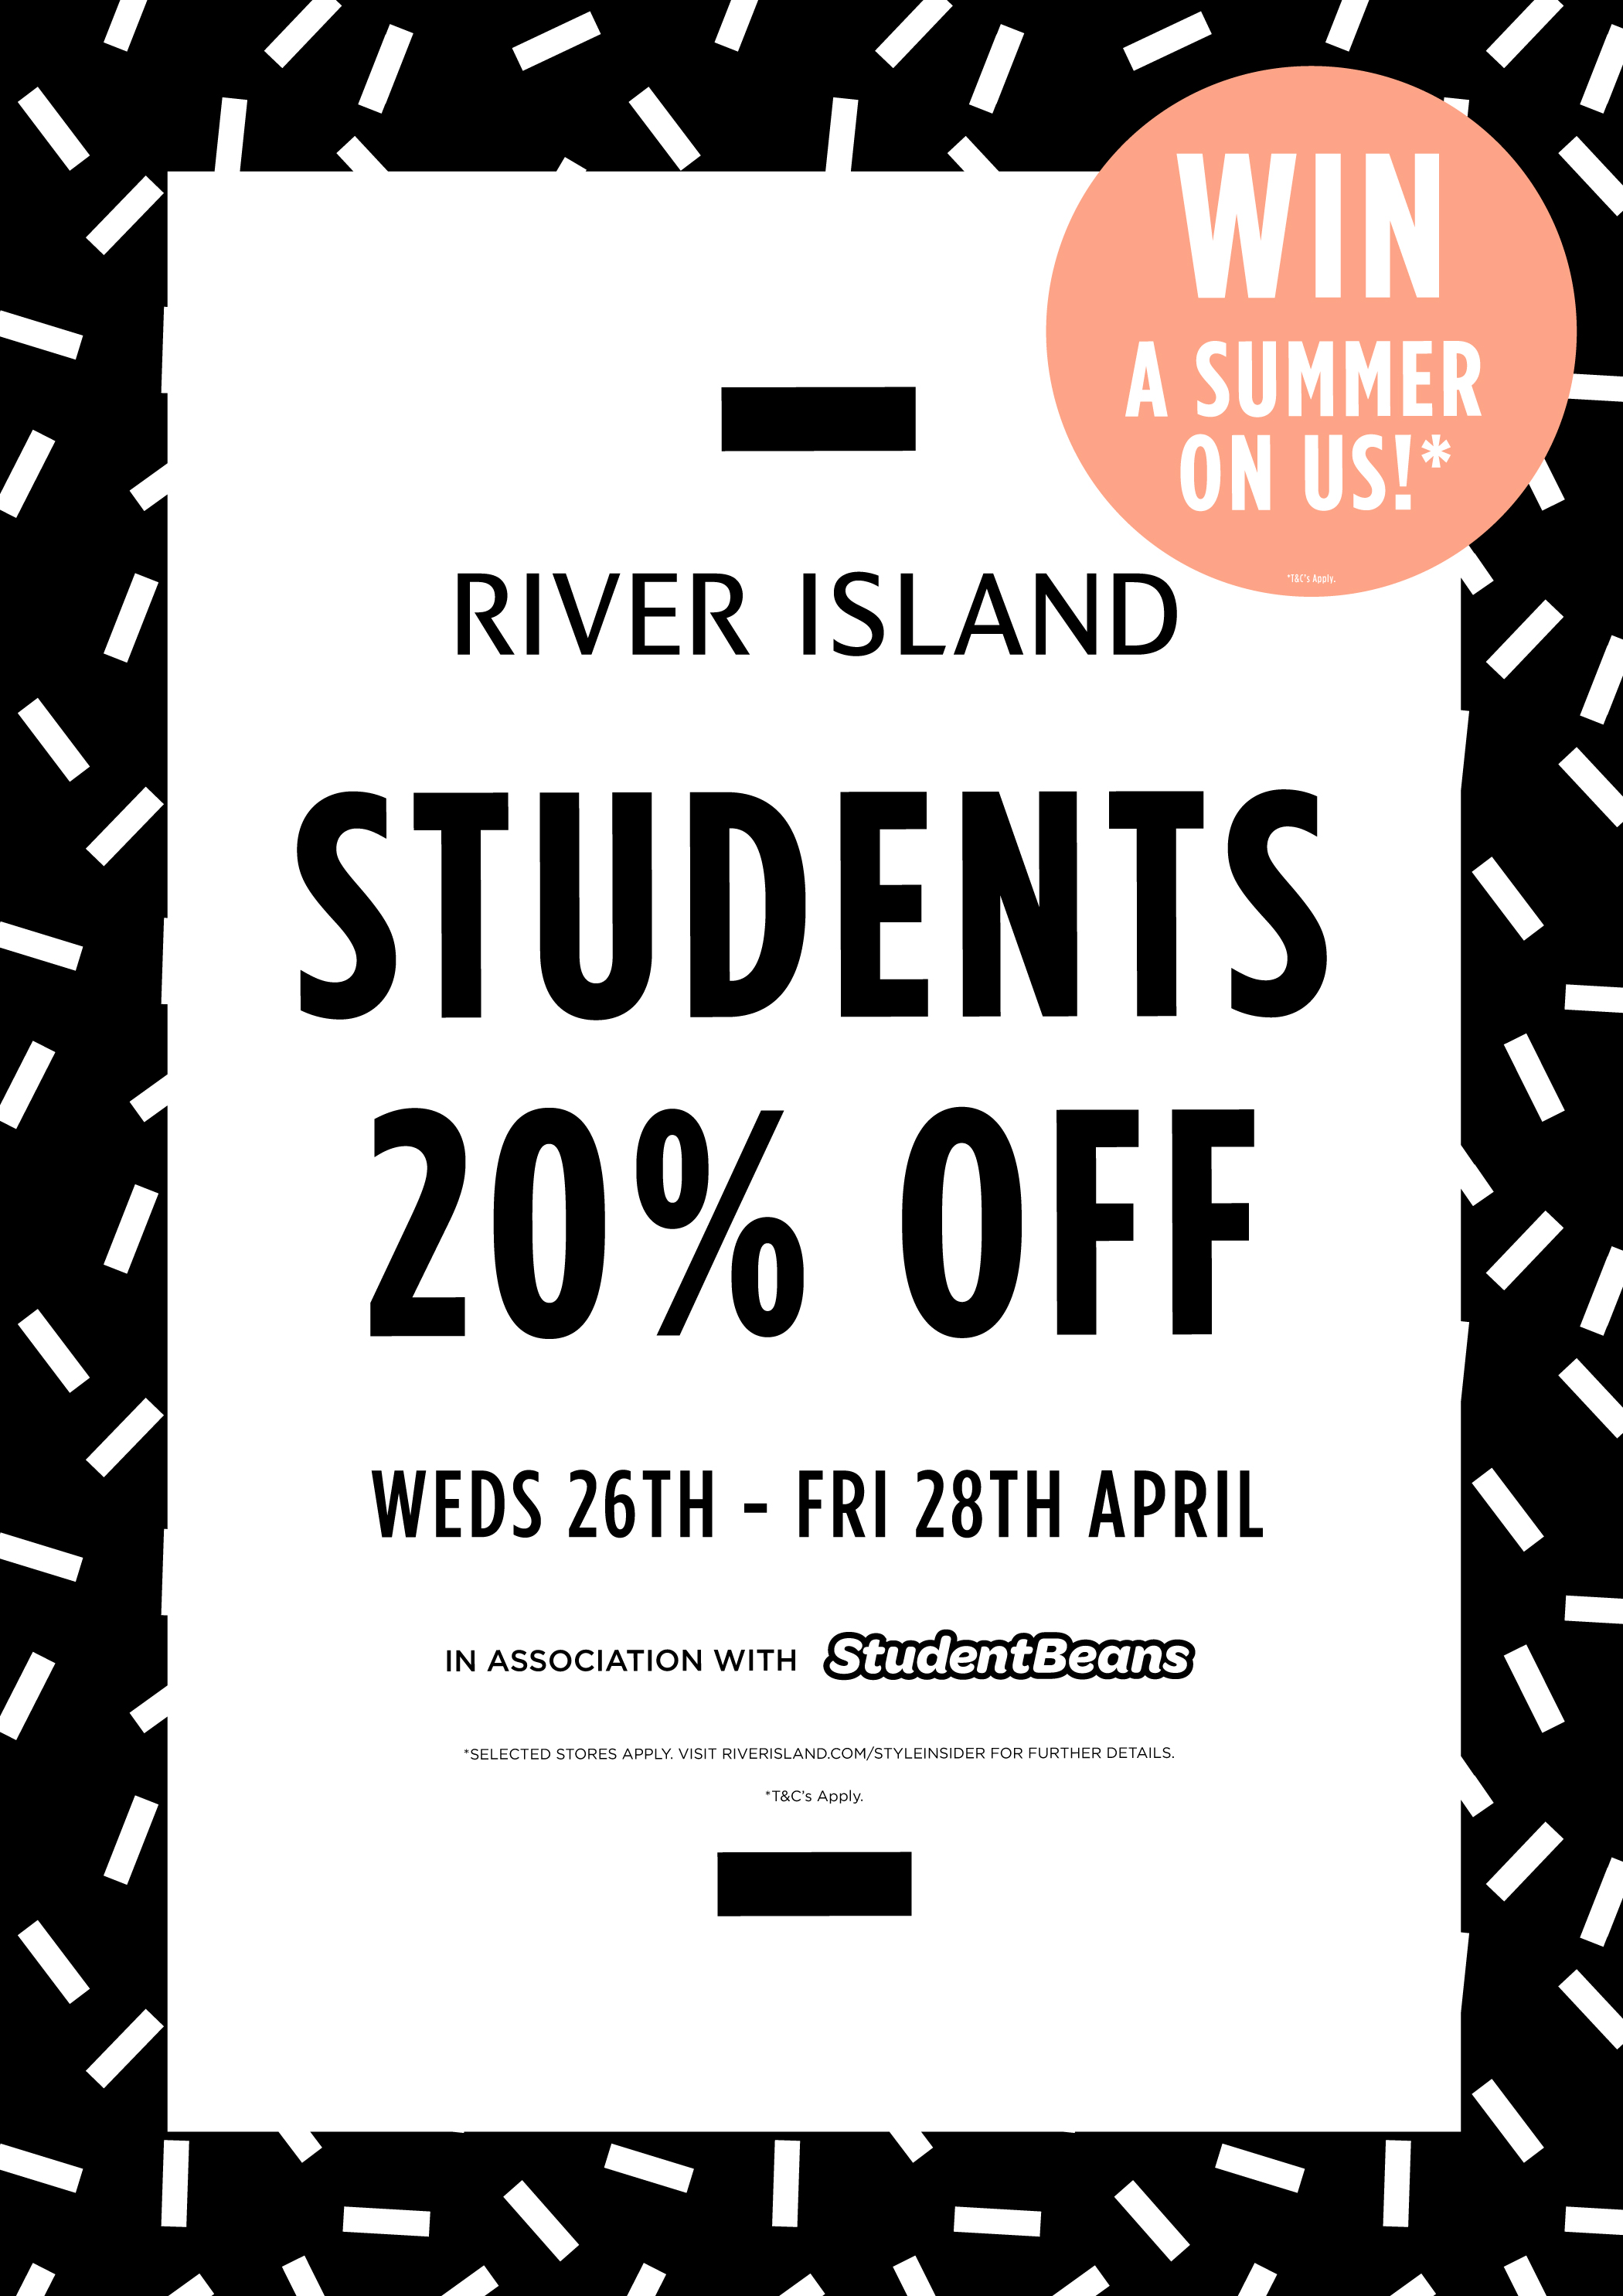 Just click Get Deal to Sign Up and get your free £10 River Island Voucher, as well as 20% off for a friend. Plus get the latest River Island student discount.